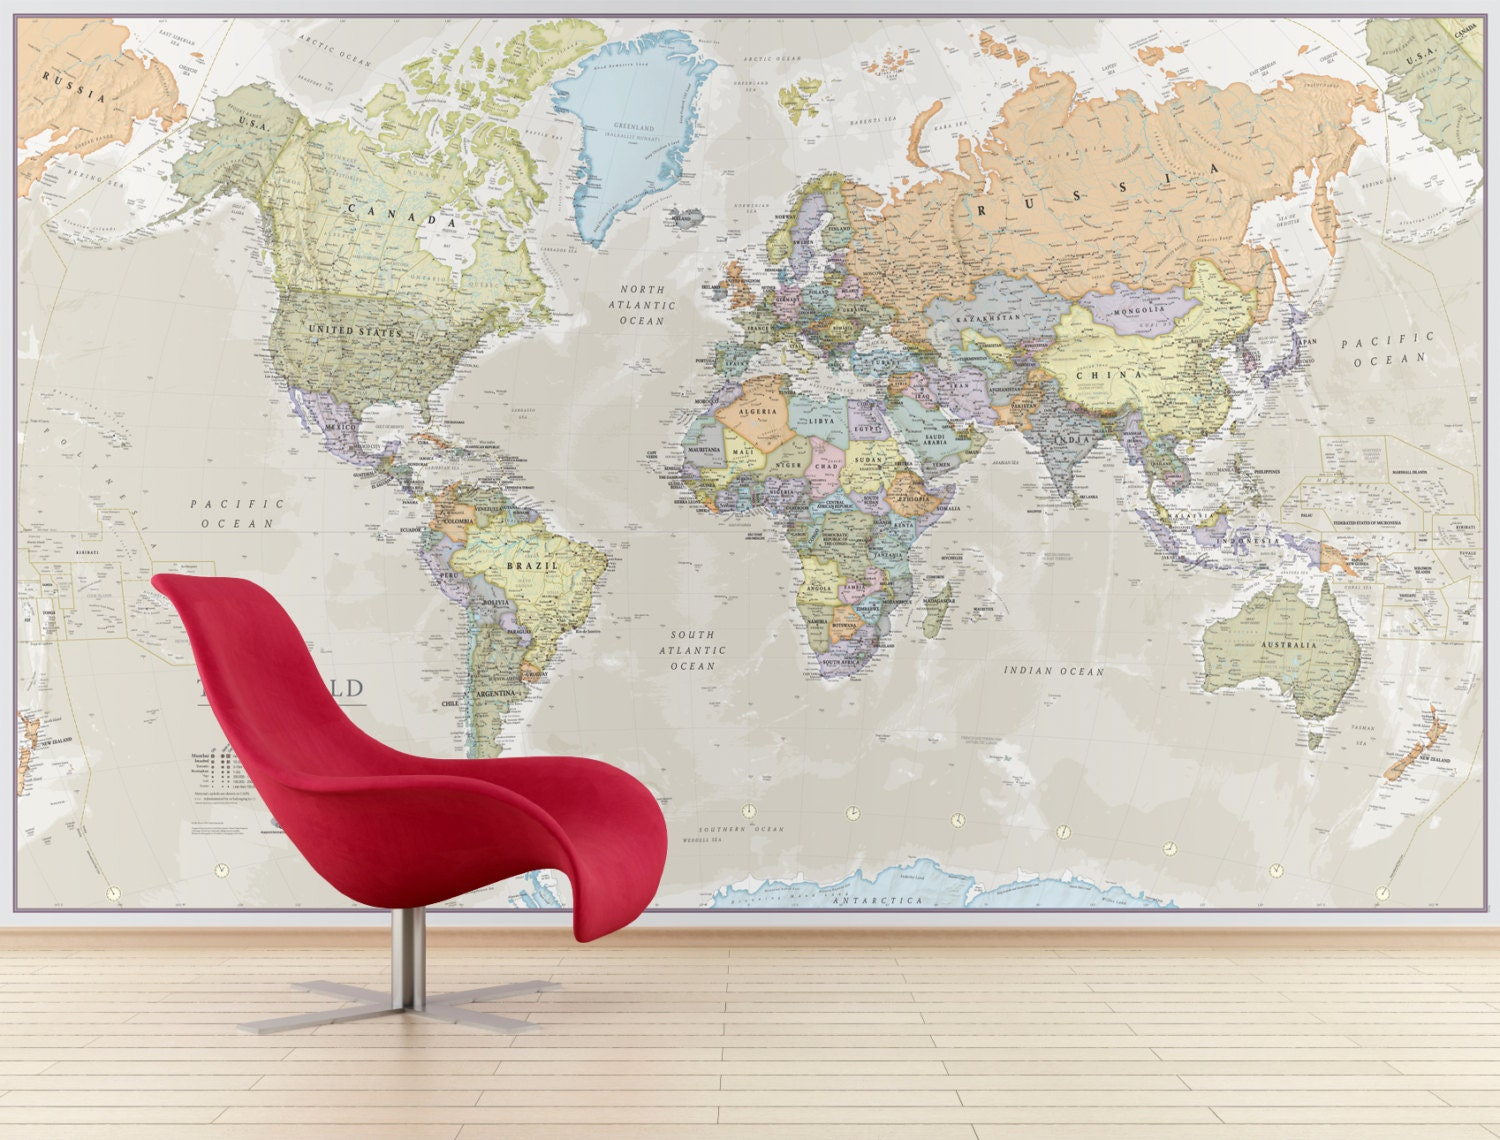 Giant classic world map mural home decor push pin map for Classic world map wall mural